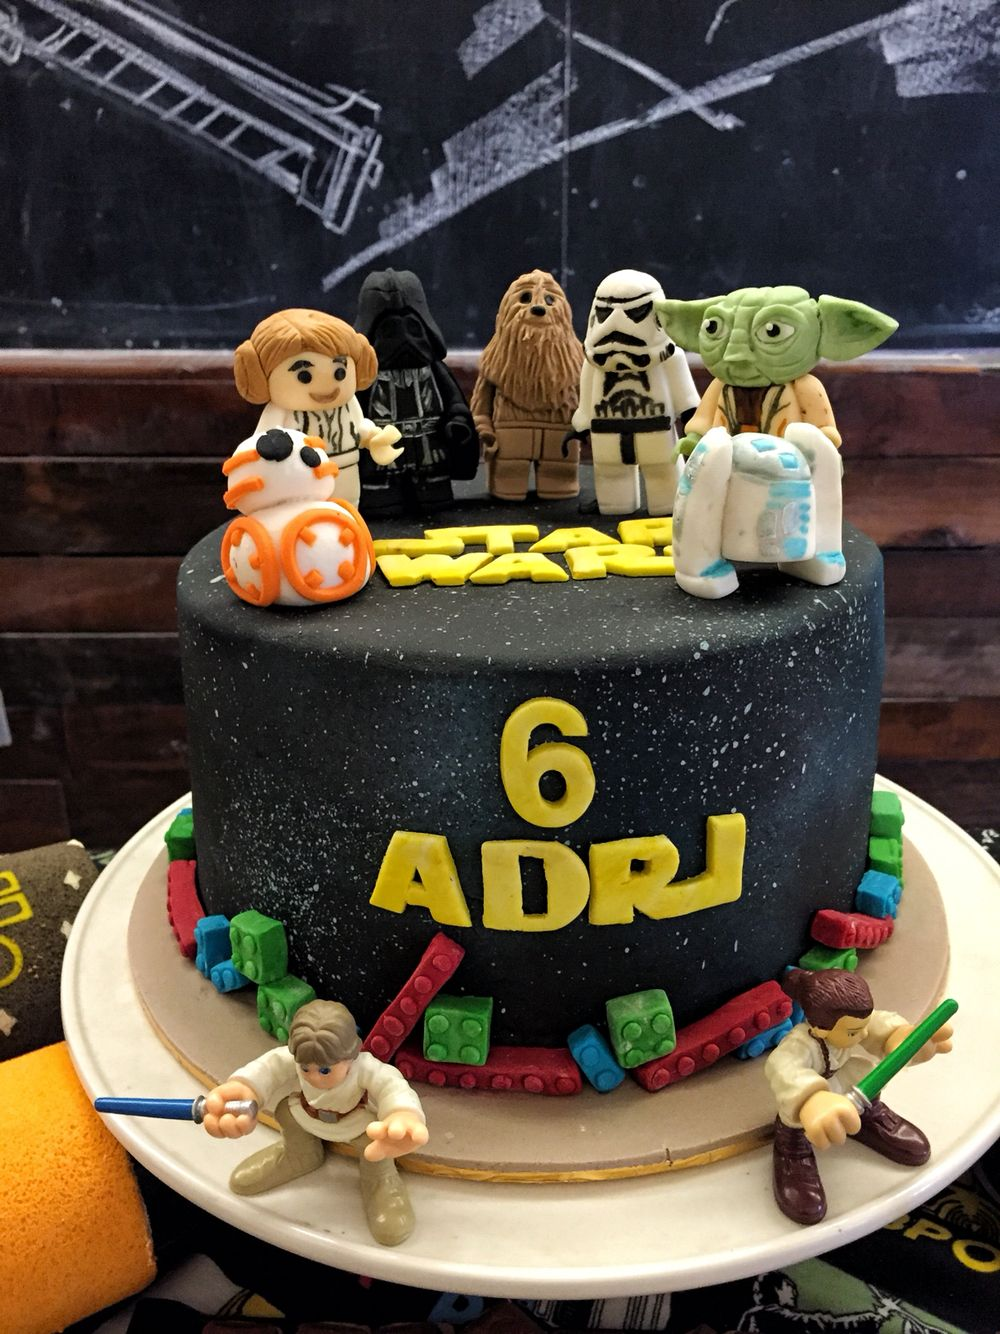 star wars themed party Cake, Dessert table